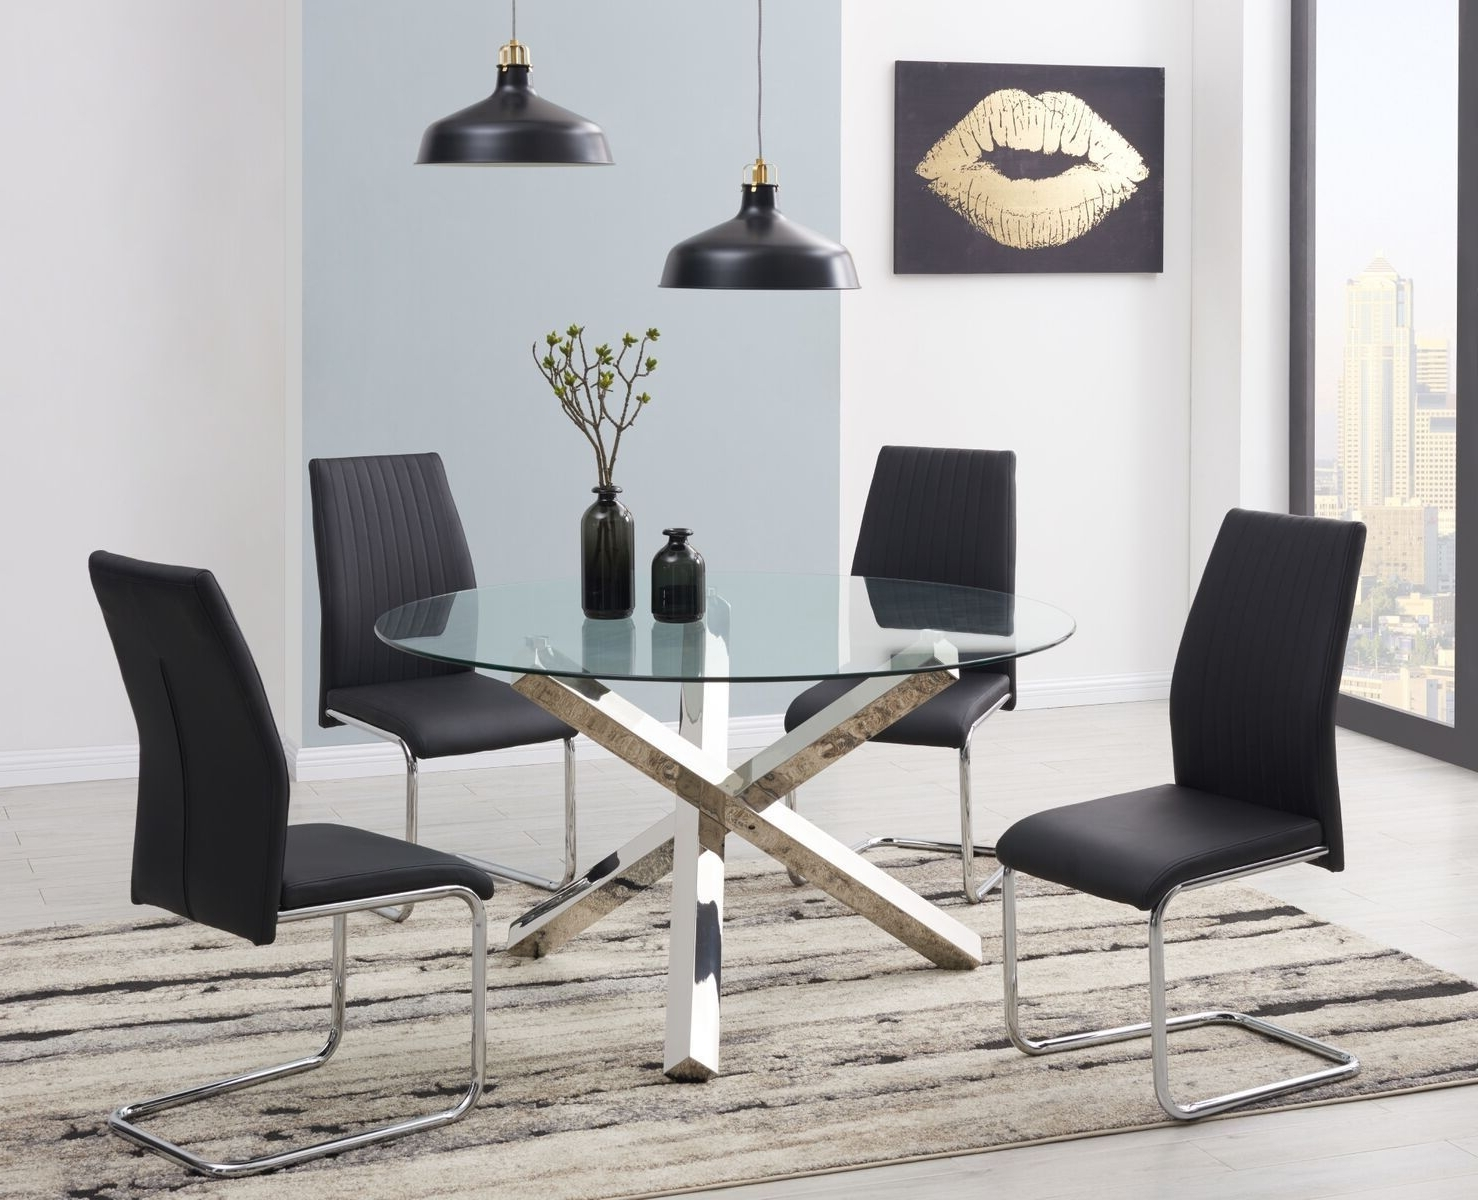 Glass 6 Seater Dining Tables In Favorite Details About Vogue Large Round Chrome Clear Glass 4 6 Seater Dining Table  And Leather Chairs (Gallery 17 of 25)